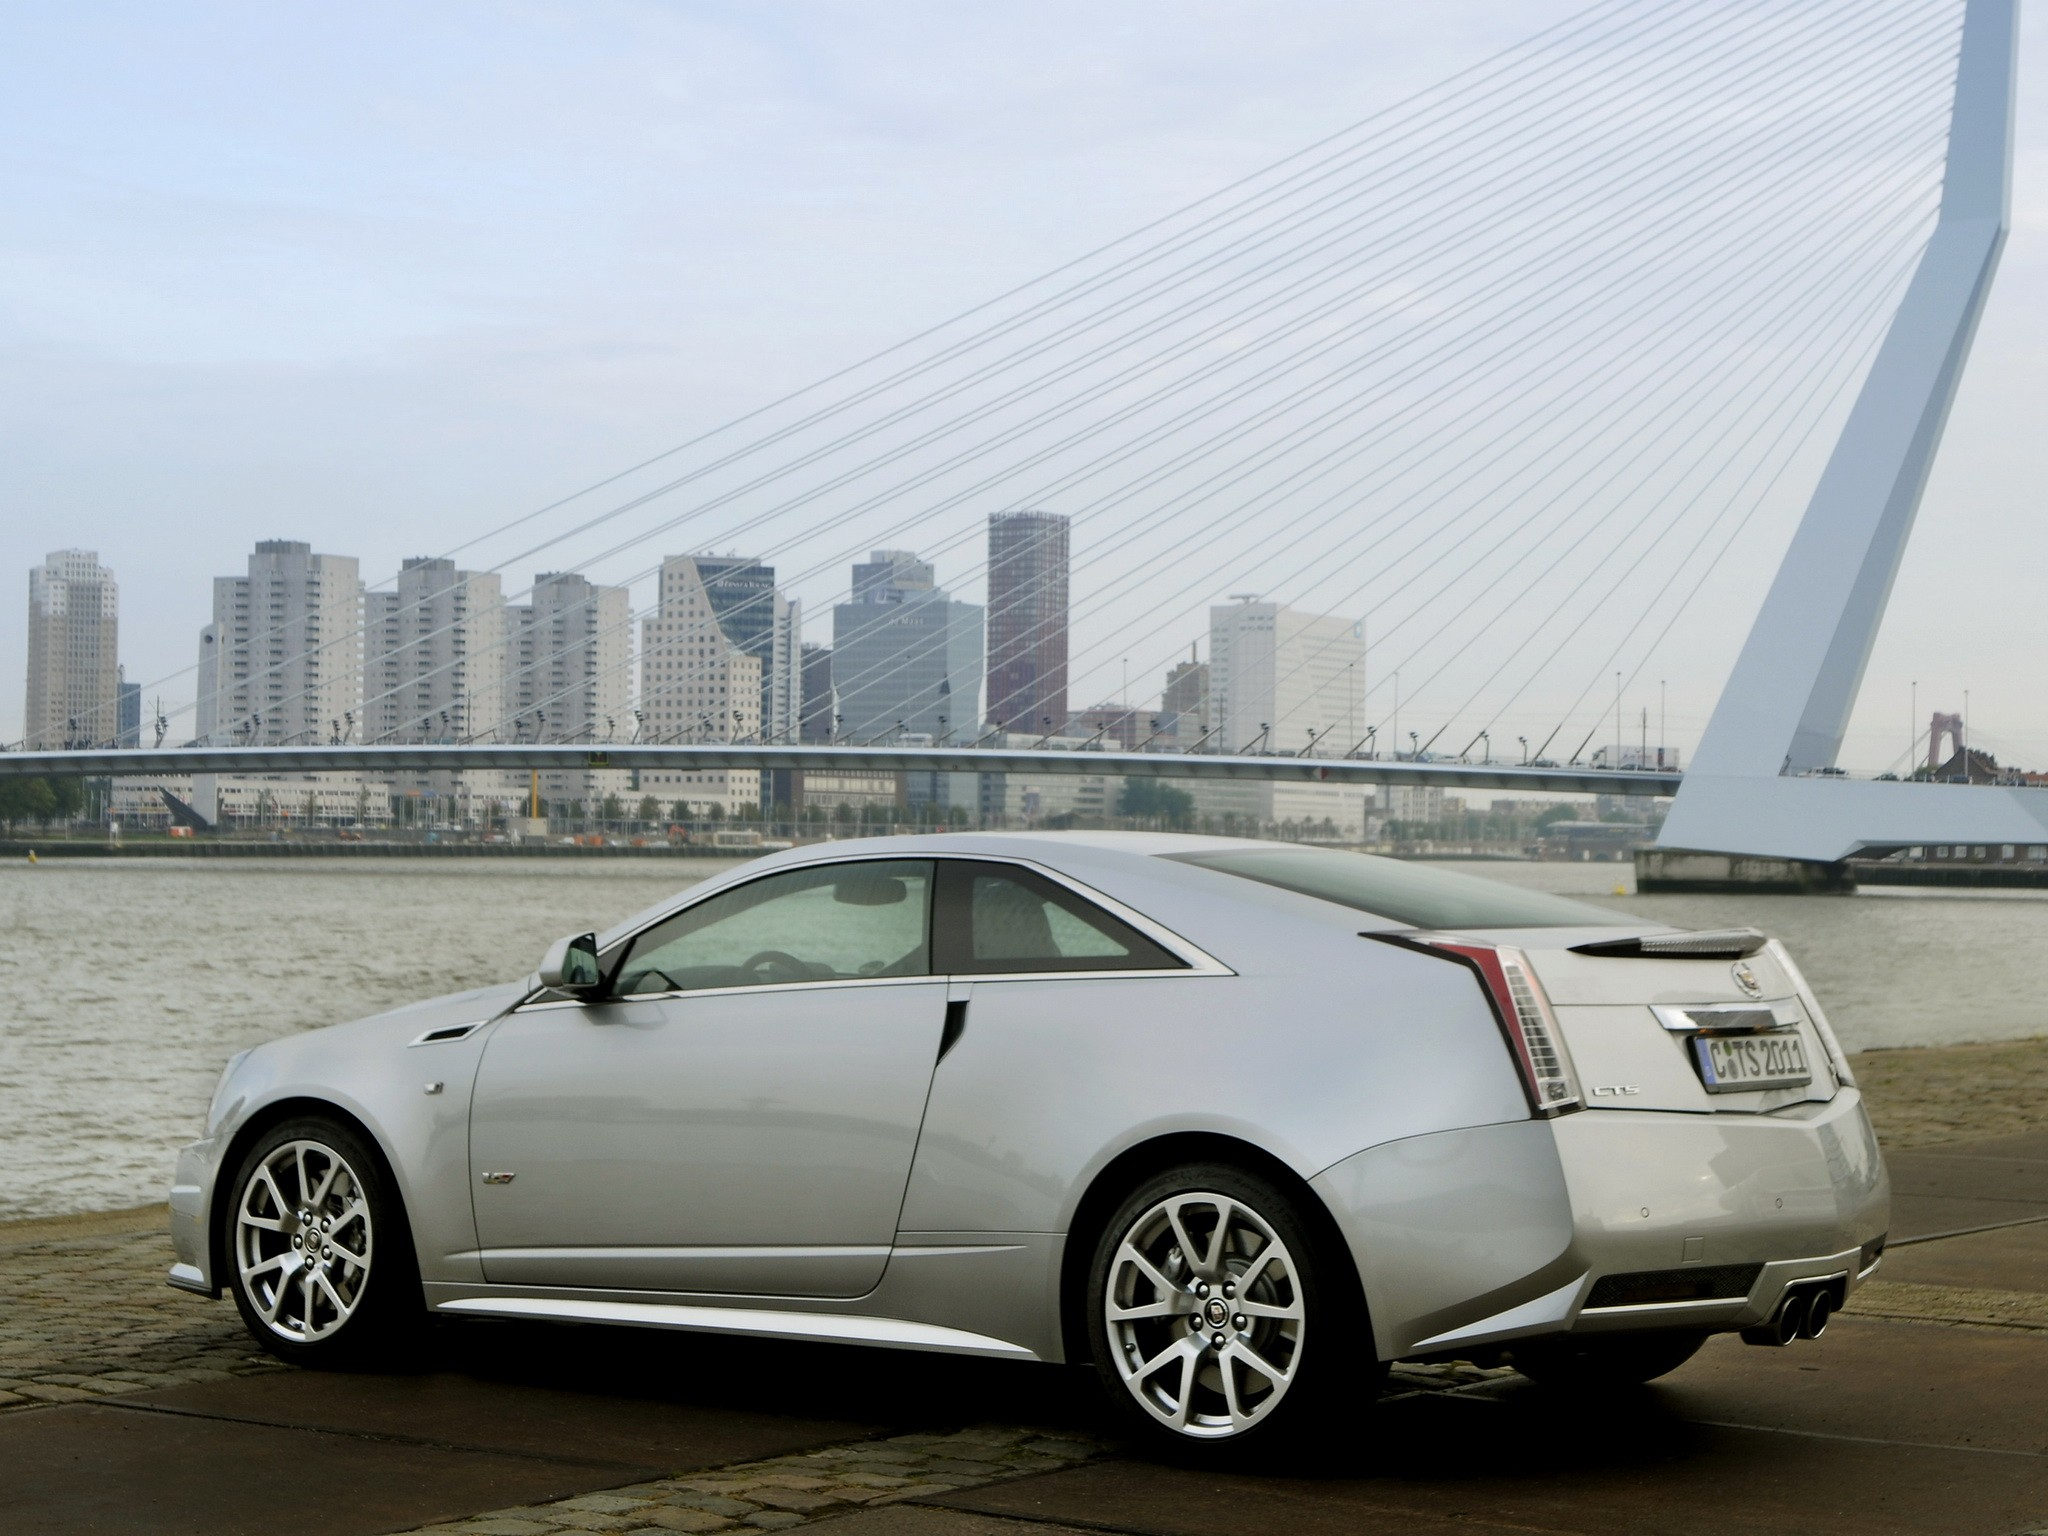 Cadillac Cts Coupe 2016 >> CADILLAC CTS-V Coupe specs & photos - 2012, 2013, 2014, 2015, 2016, 2017, 2018, 2019 - autoevolution